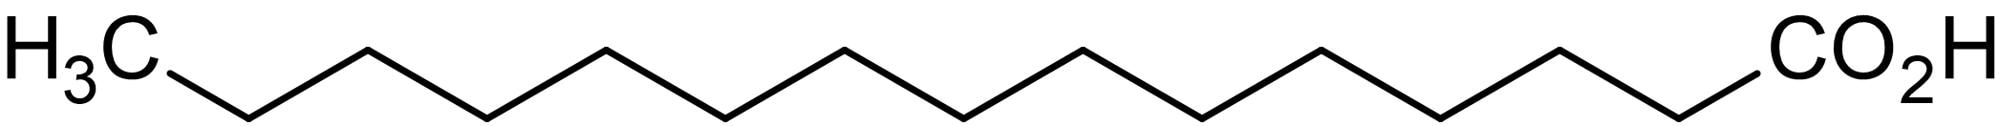 Chemical Structure - Pentadecanoic acid, saturated fatty acid (ab143869)